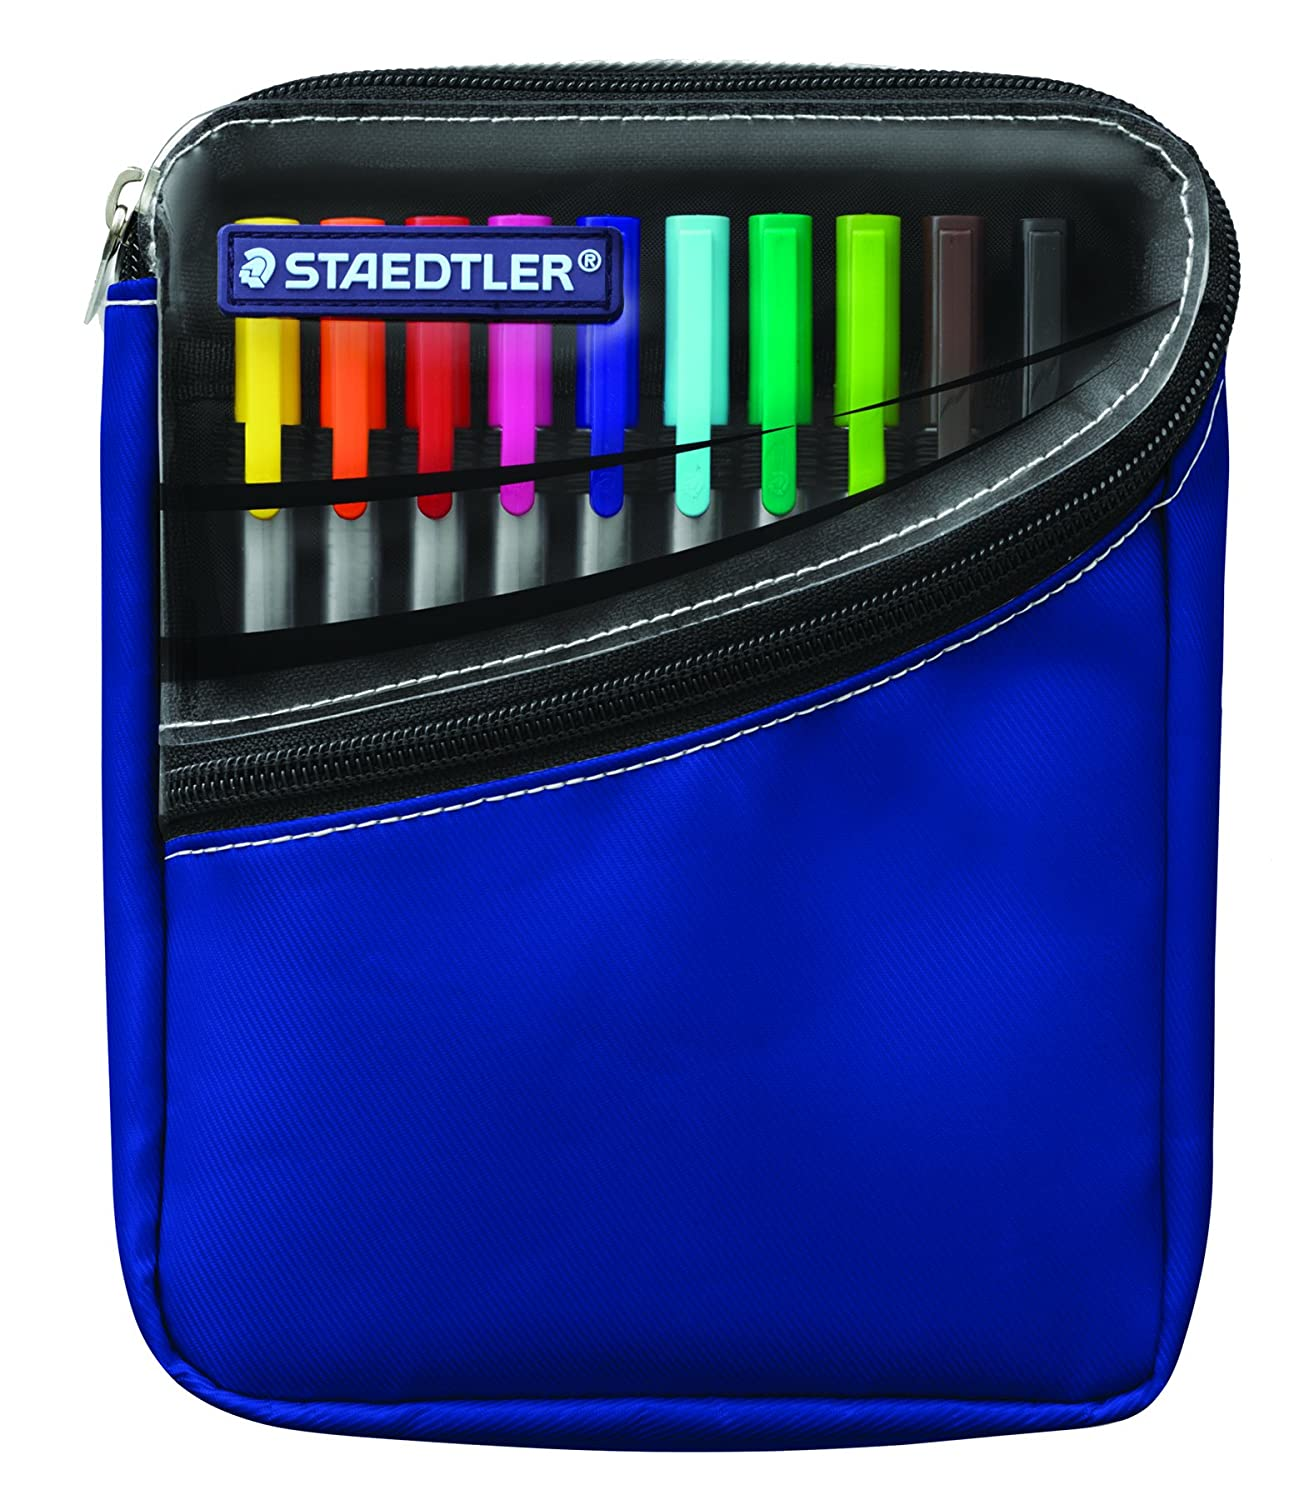 Staedtler Staedtler Triplus Fineliner Pens, Pack of 10, Assorted Colors  (334SB10): Amazon.co.uk: Office Products